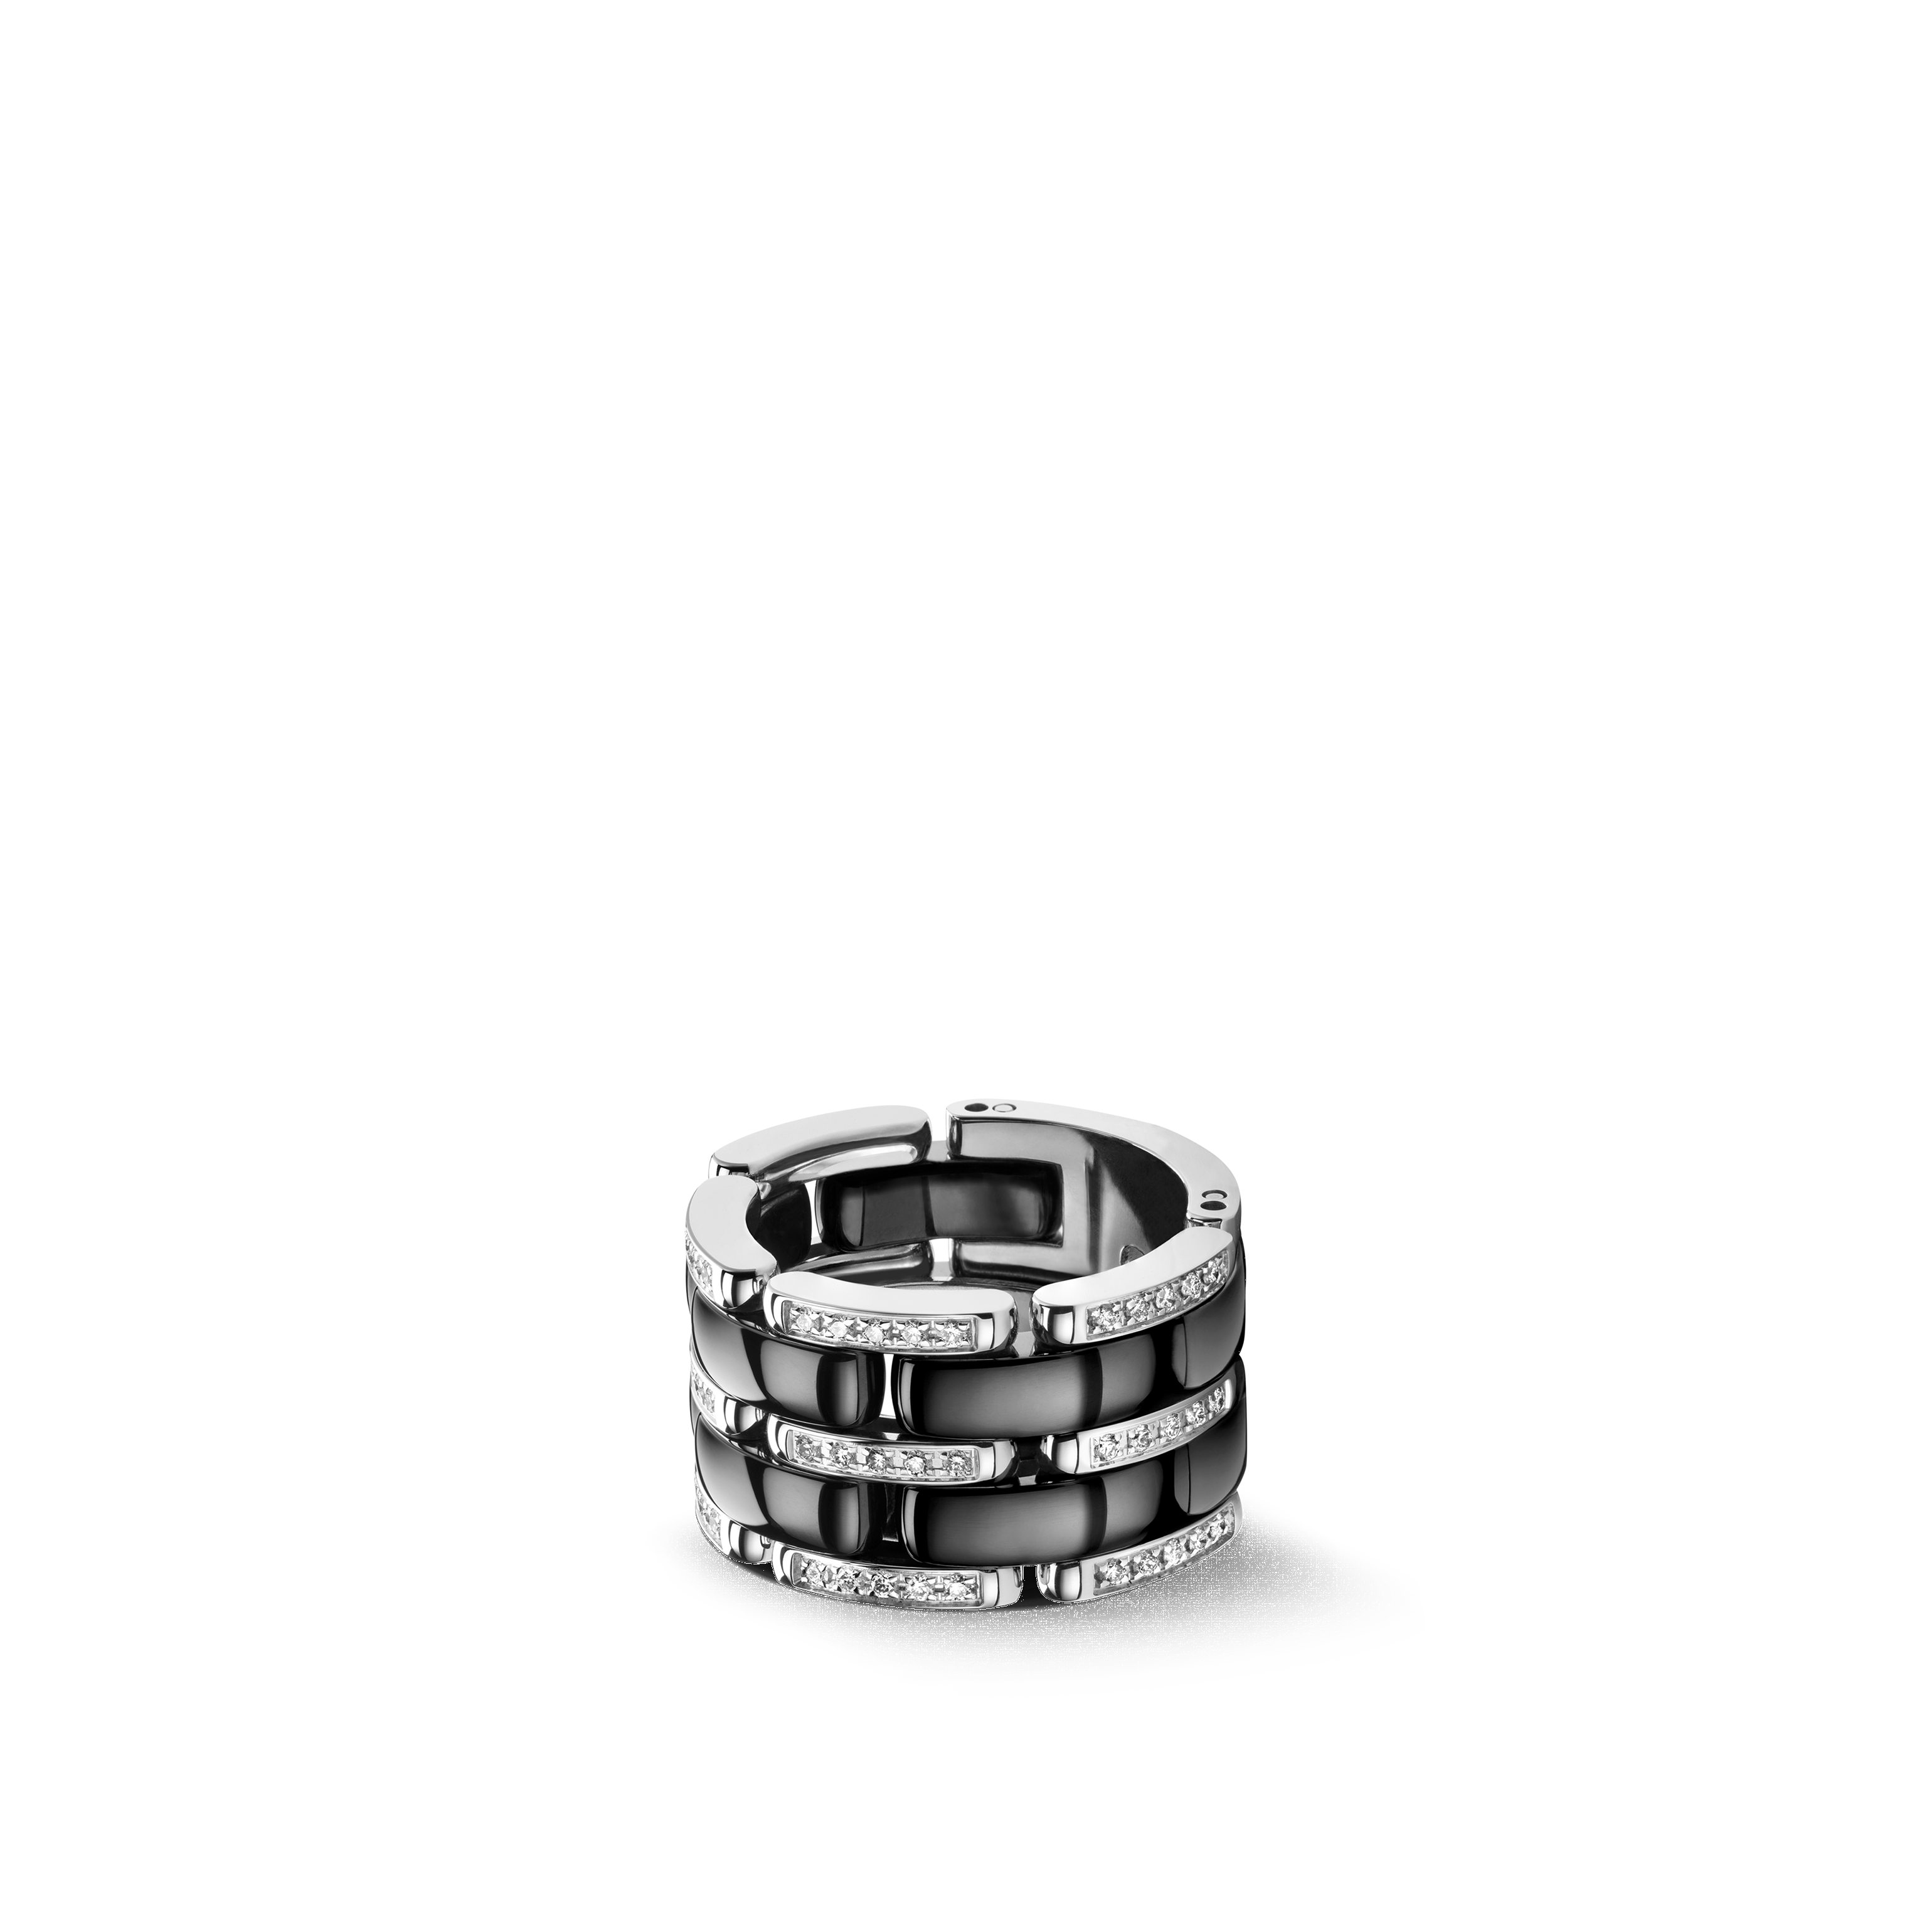 Ultra ring - Large version, 18K white gold, diamonds, black ceramic - CHANEL - Default view - see standard sized version